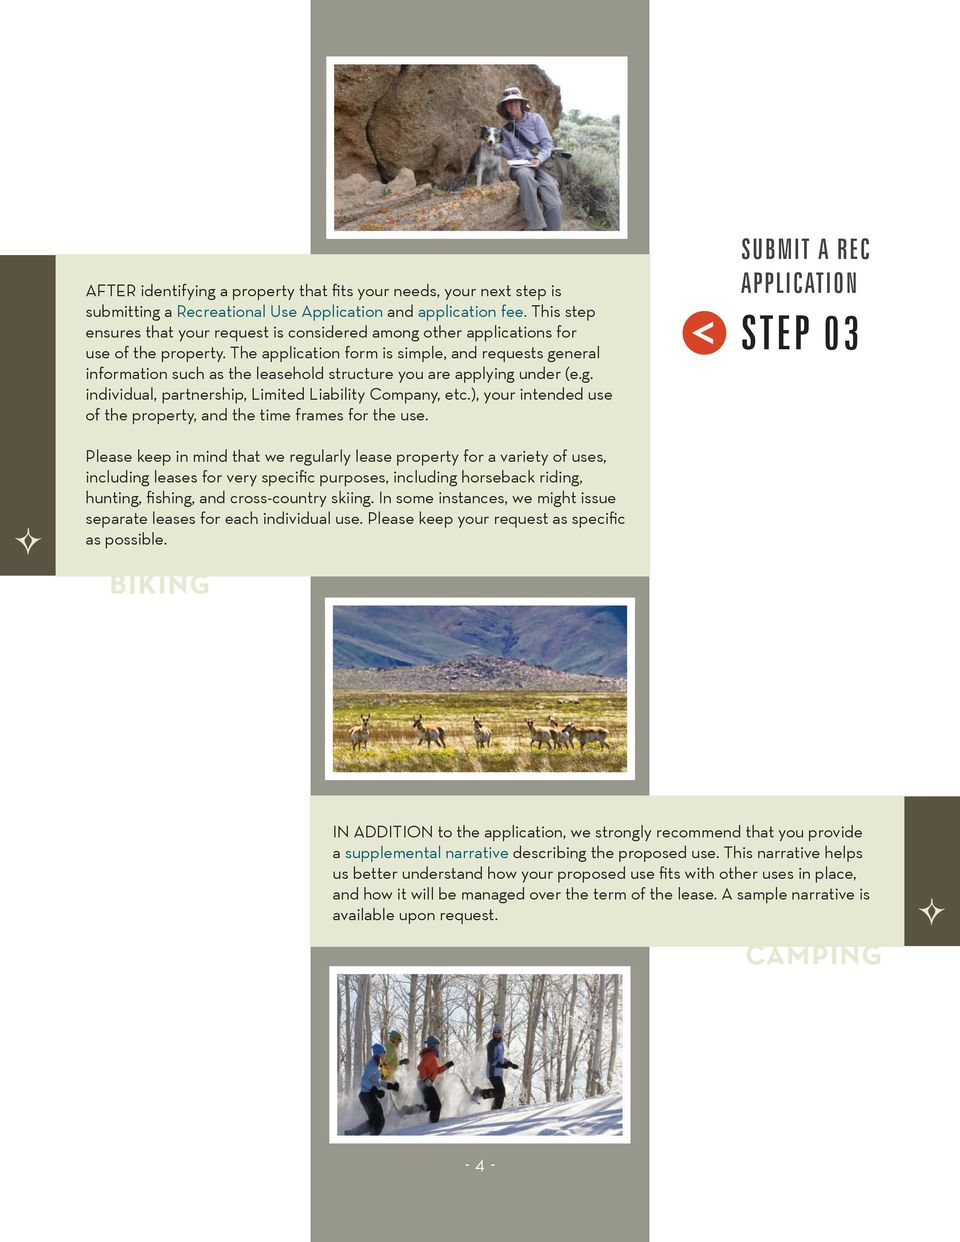 The application form is simple, and requests general information such as the leasehold structure you are applying under (e.g. individual, partnership, Limited Liability Company, etc.